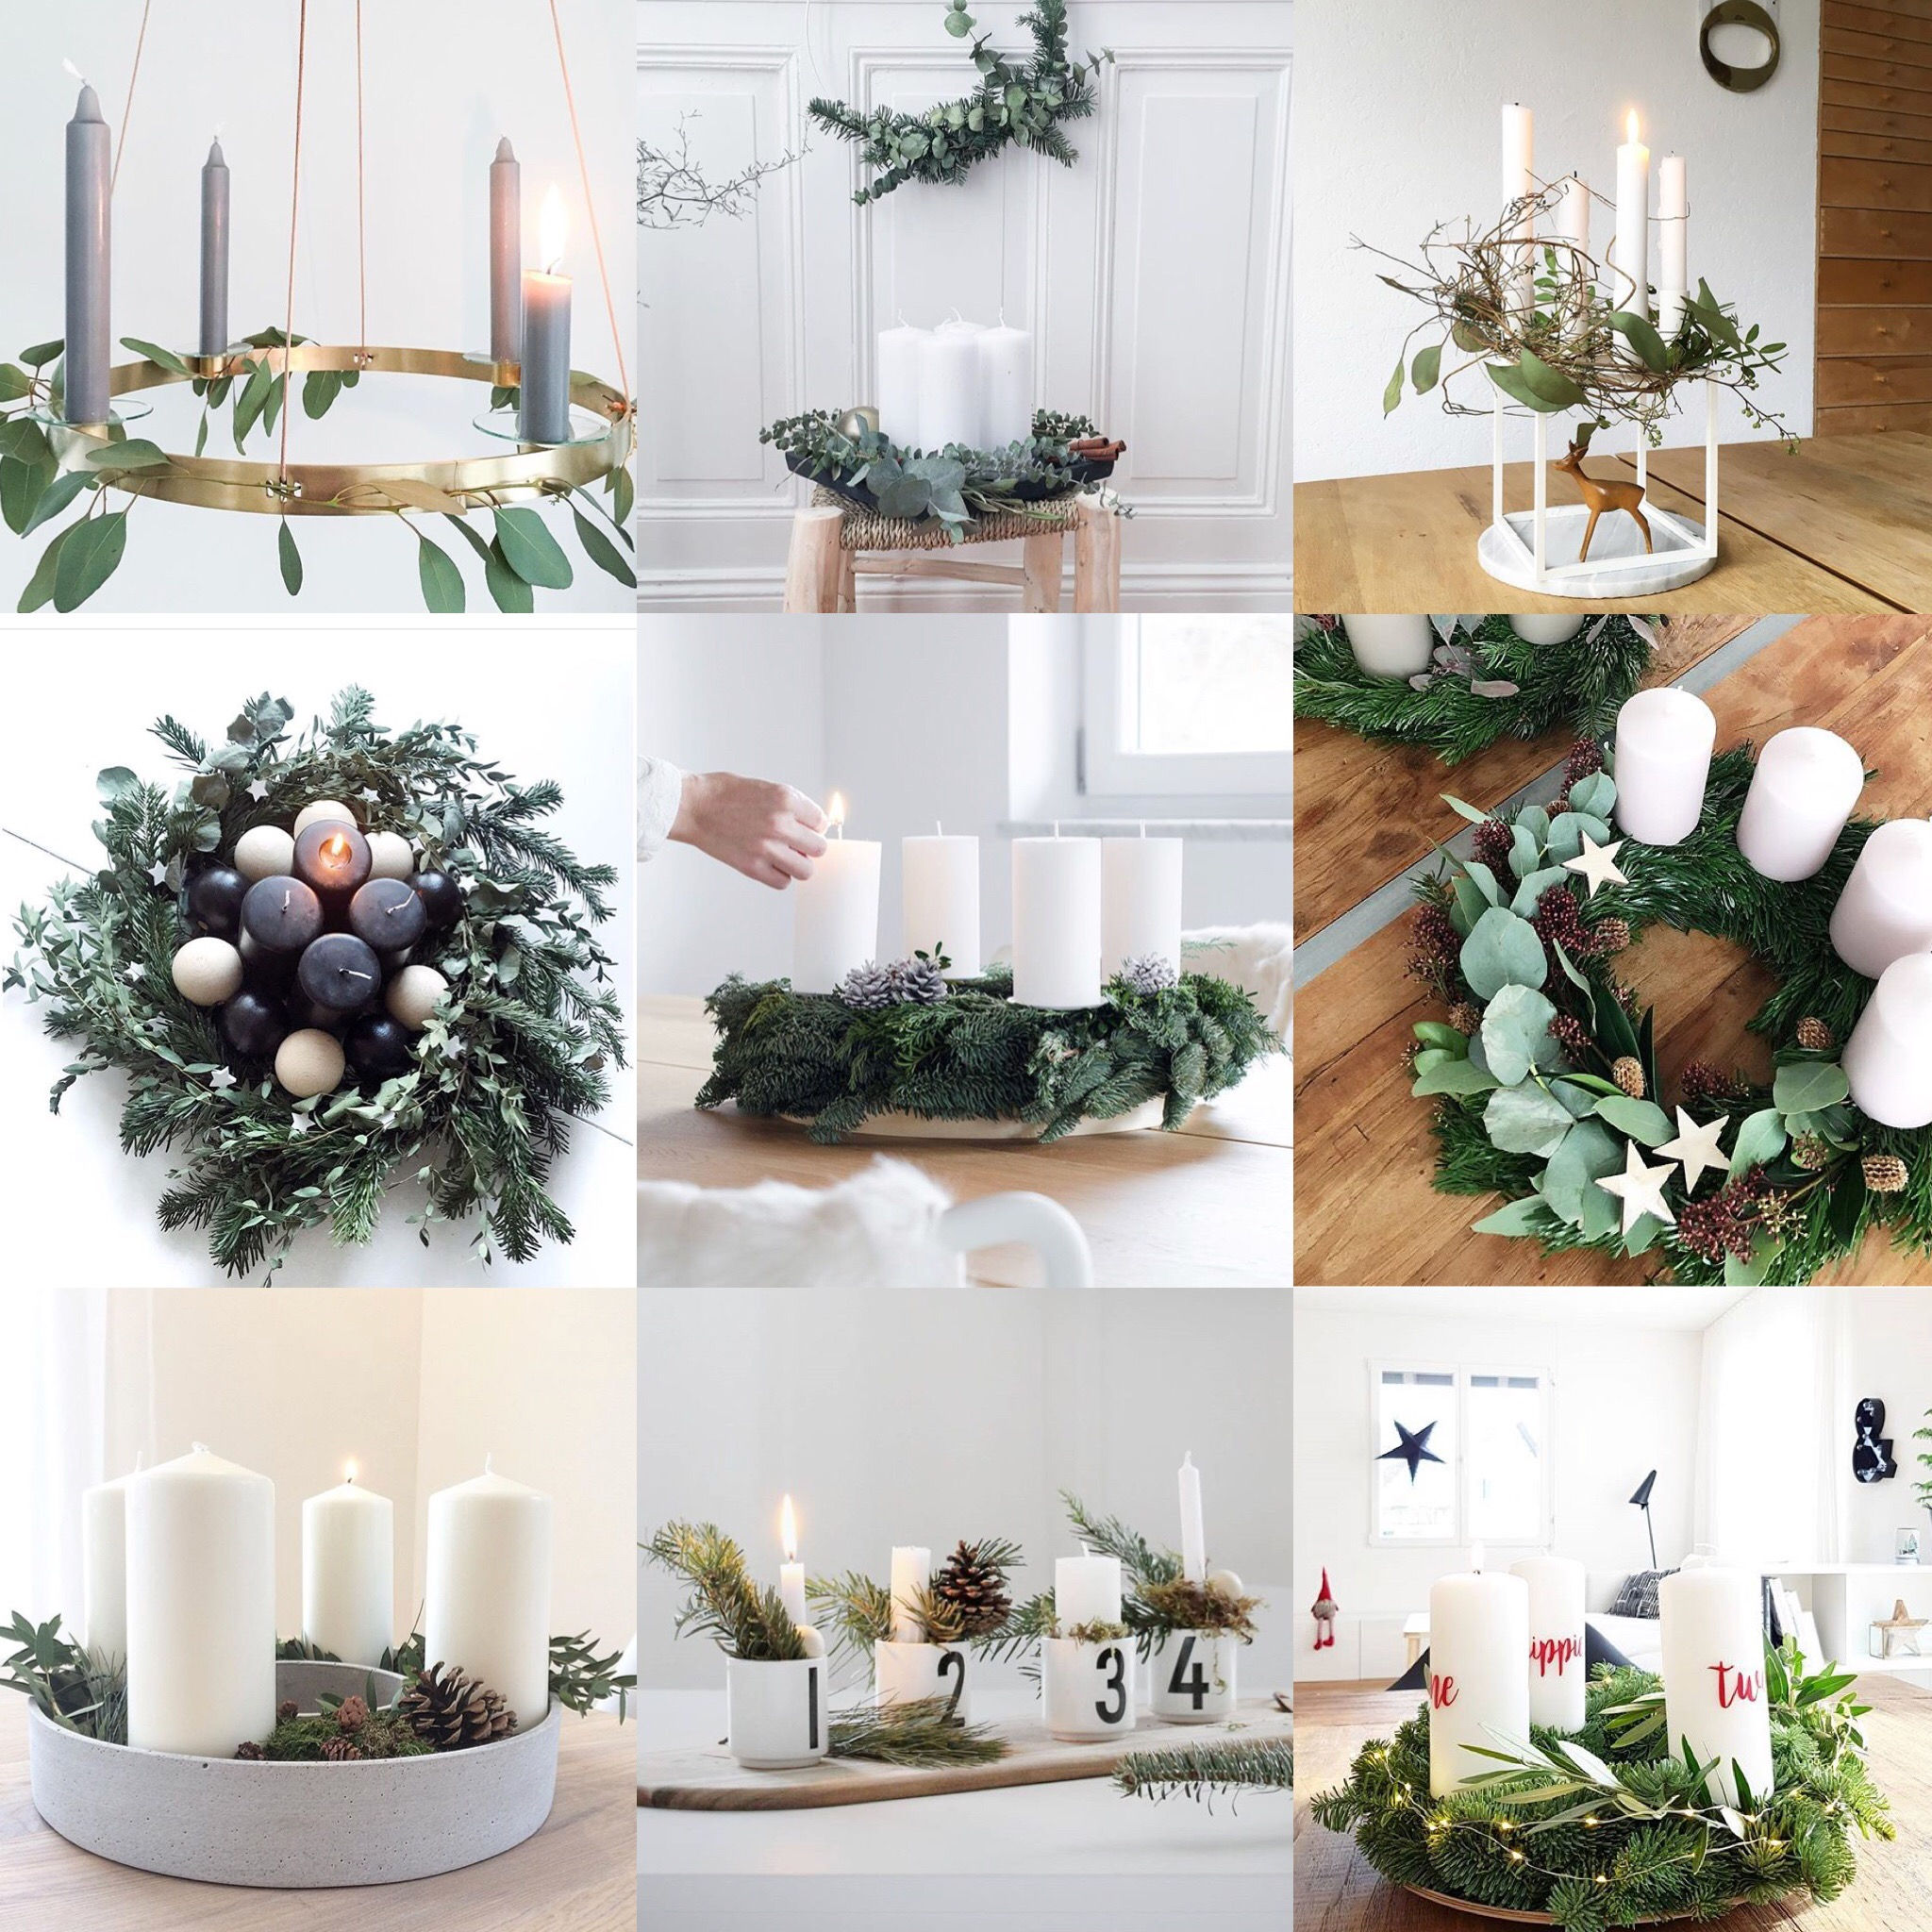 Adventskranz Inspiration #zeigdein_traumzuhause